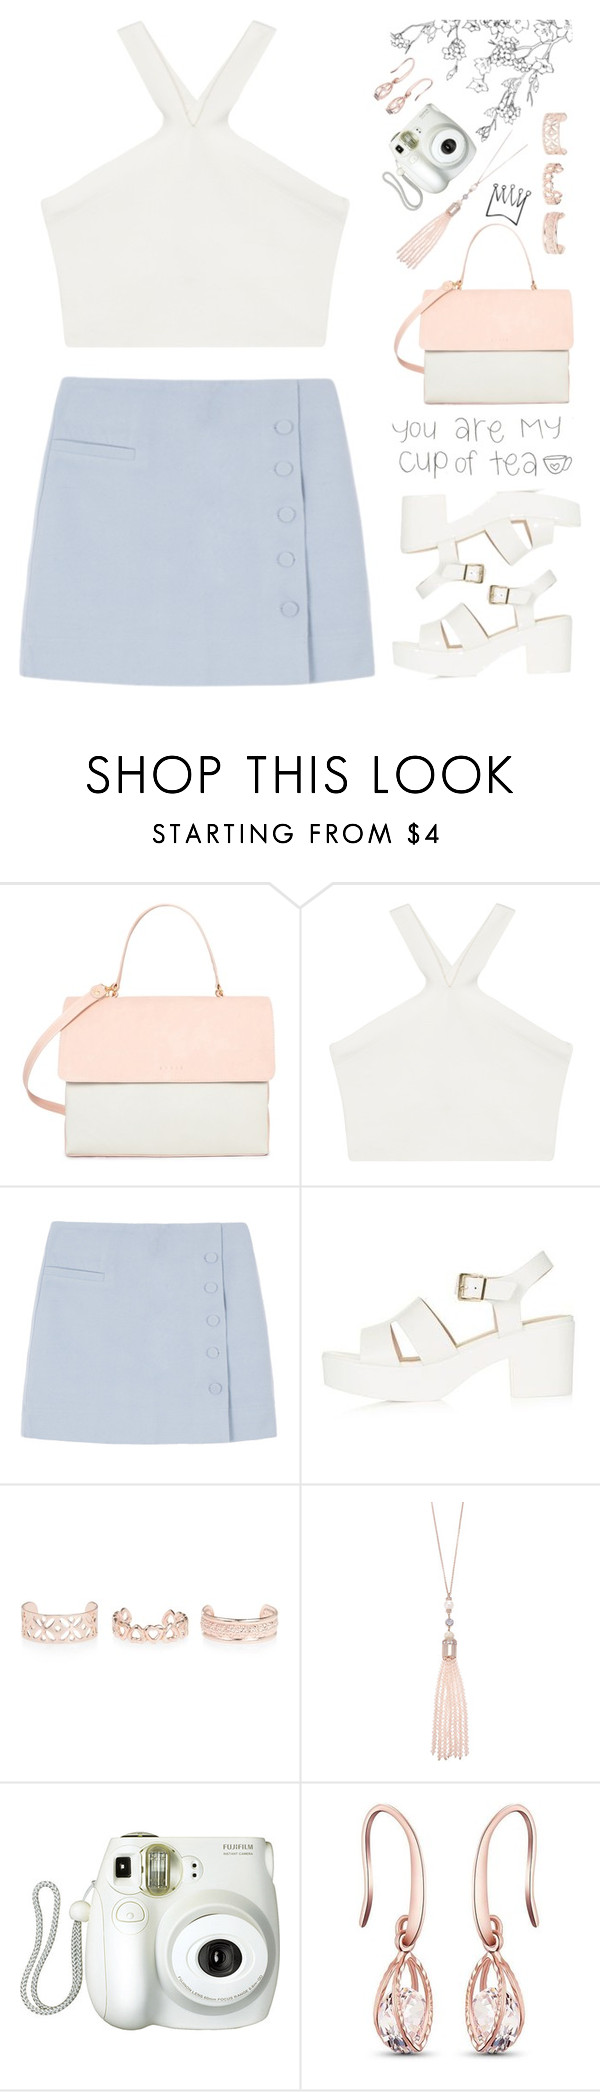 """""""Got this feeling"""" by painterella ❤ liked on Polyvore featuring Eddie, BCBGMAXAZRIA, Topshop, New Look, Oasis and Branca"""